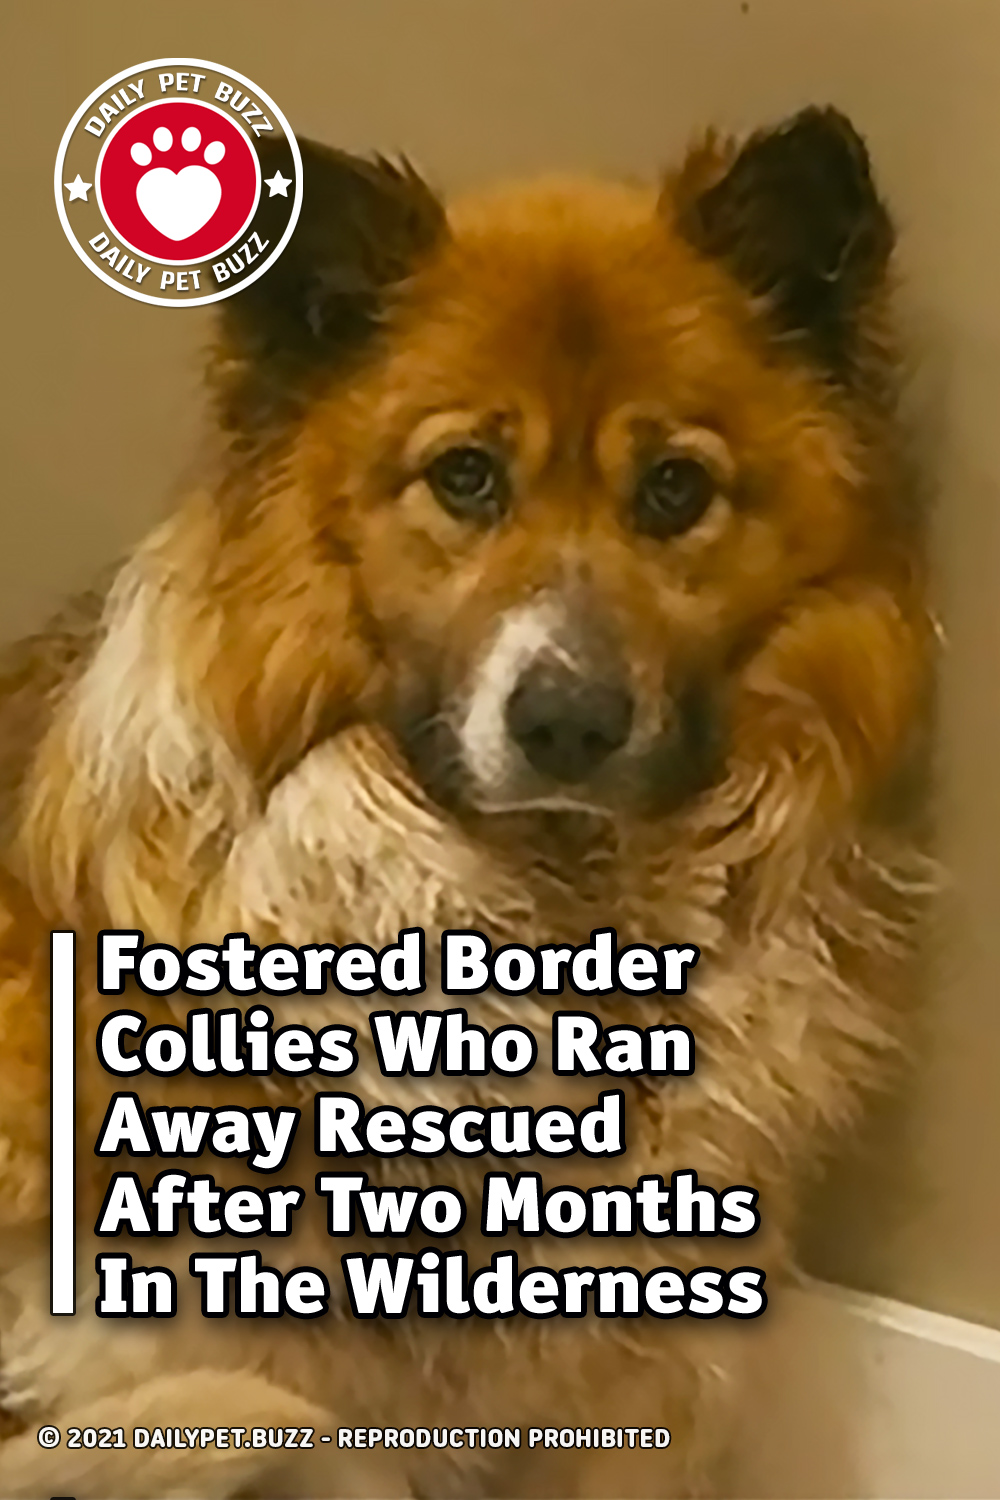 Fostered Border Collies Who Ran Away Rescued After Two Months In The Wilderness